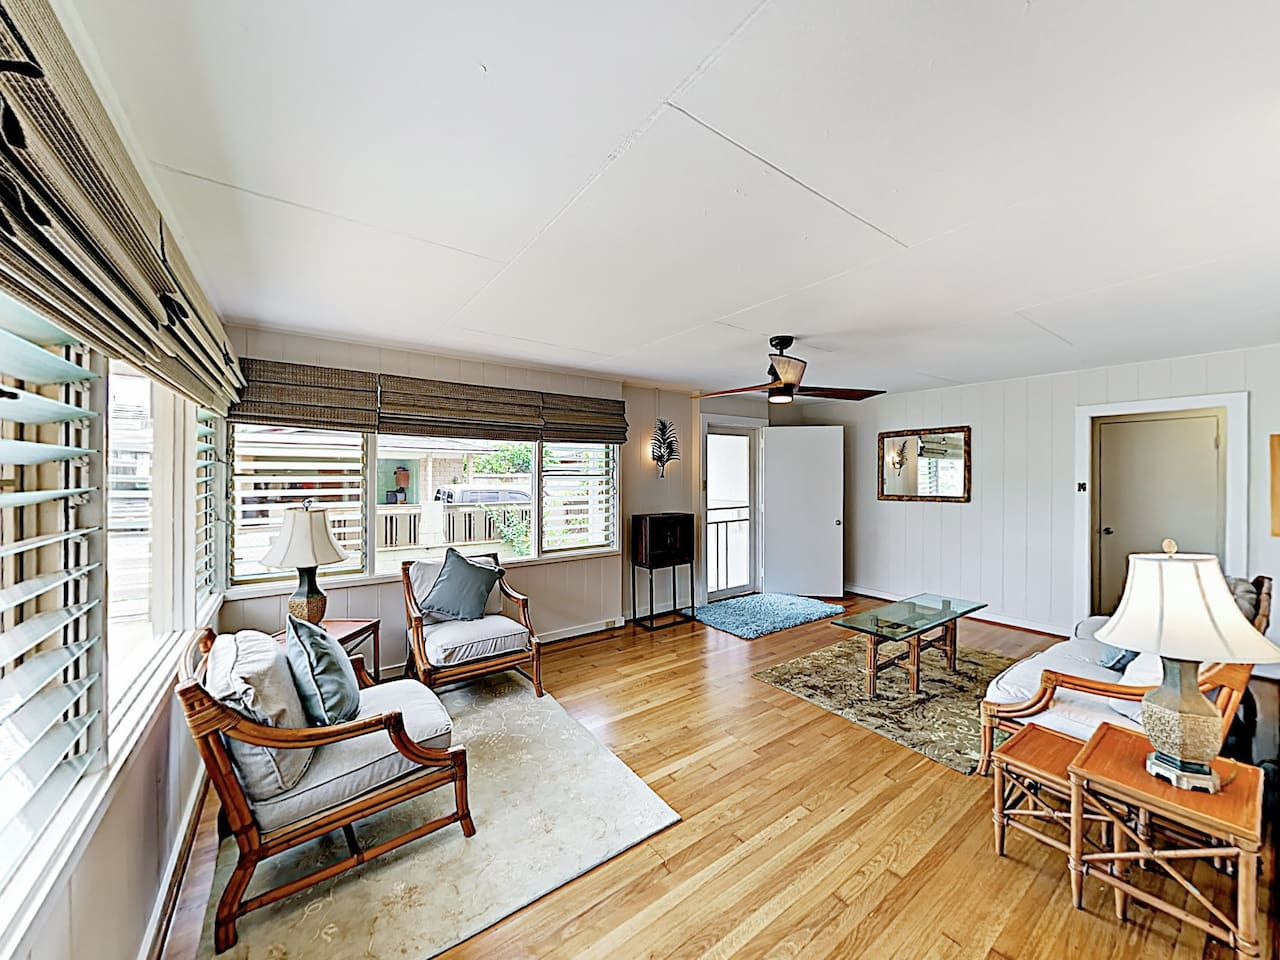 Welcome to the North Shore! This home is professionally managed by TurnKey Vacation Rentals.